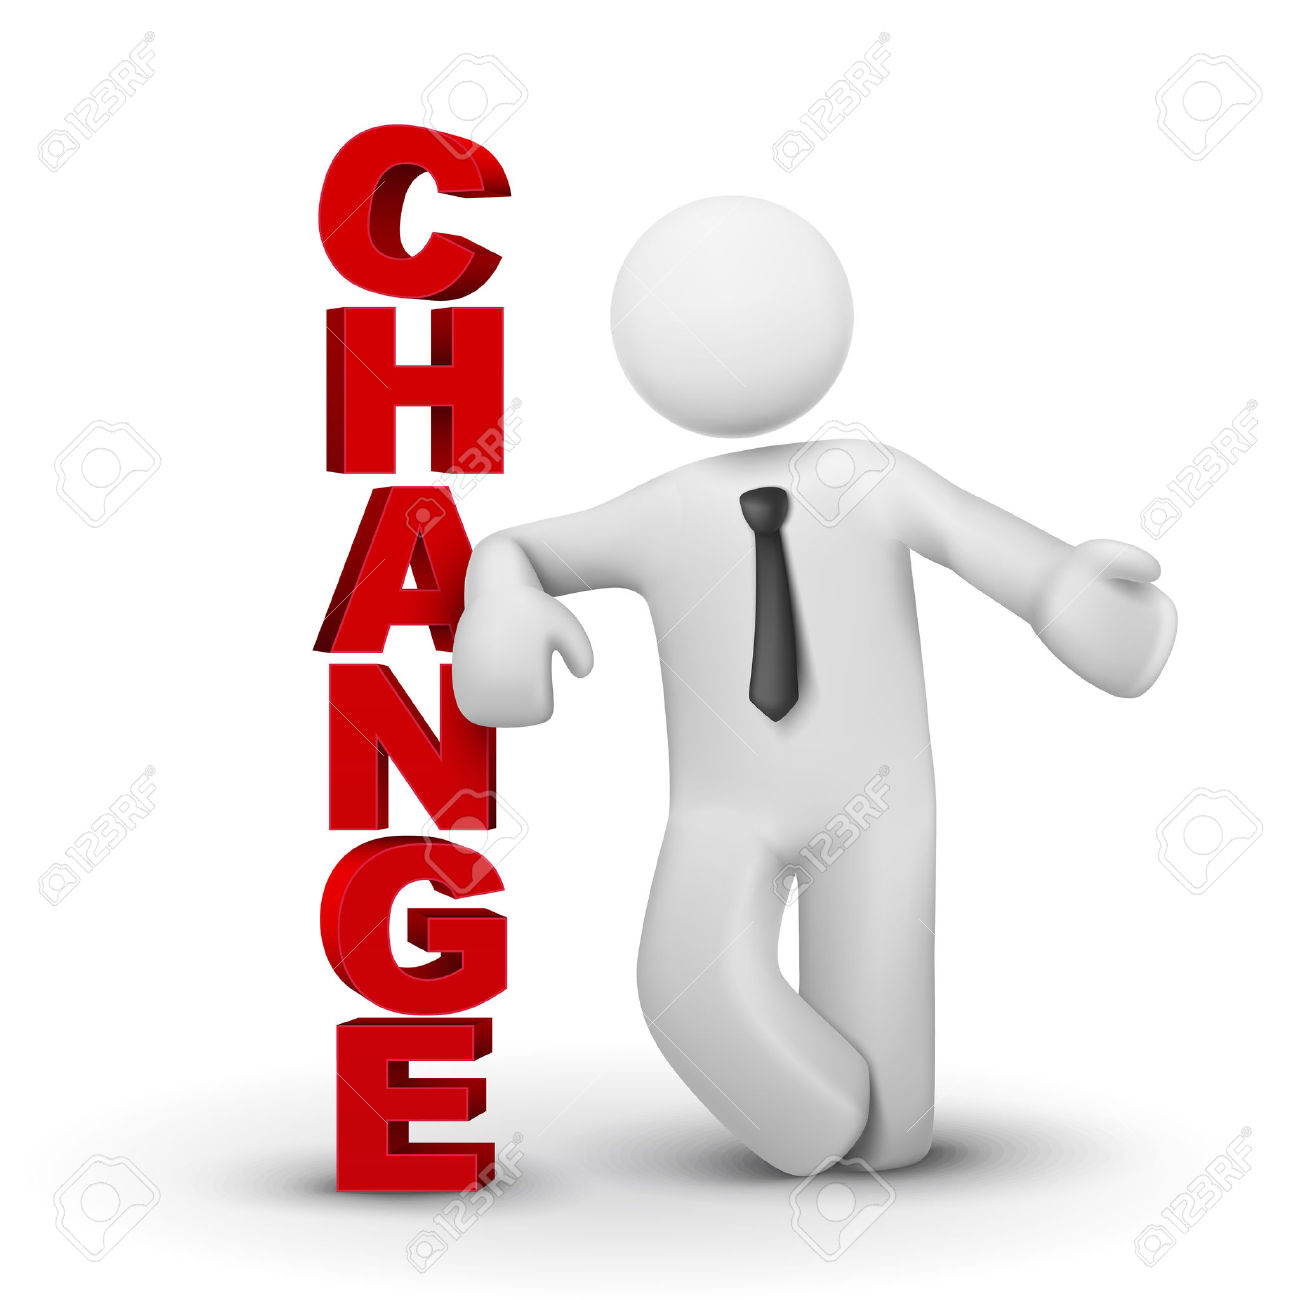 Change clipart. In business